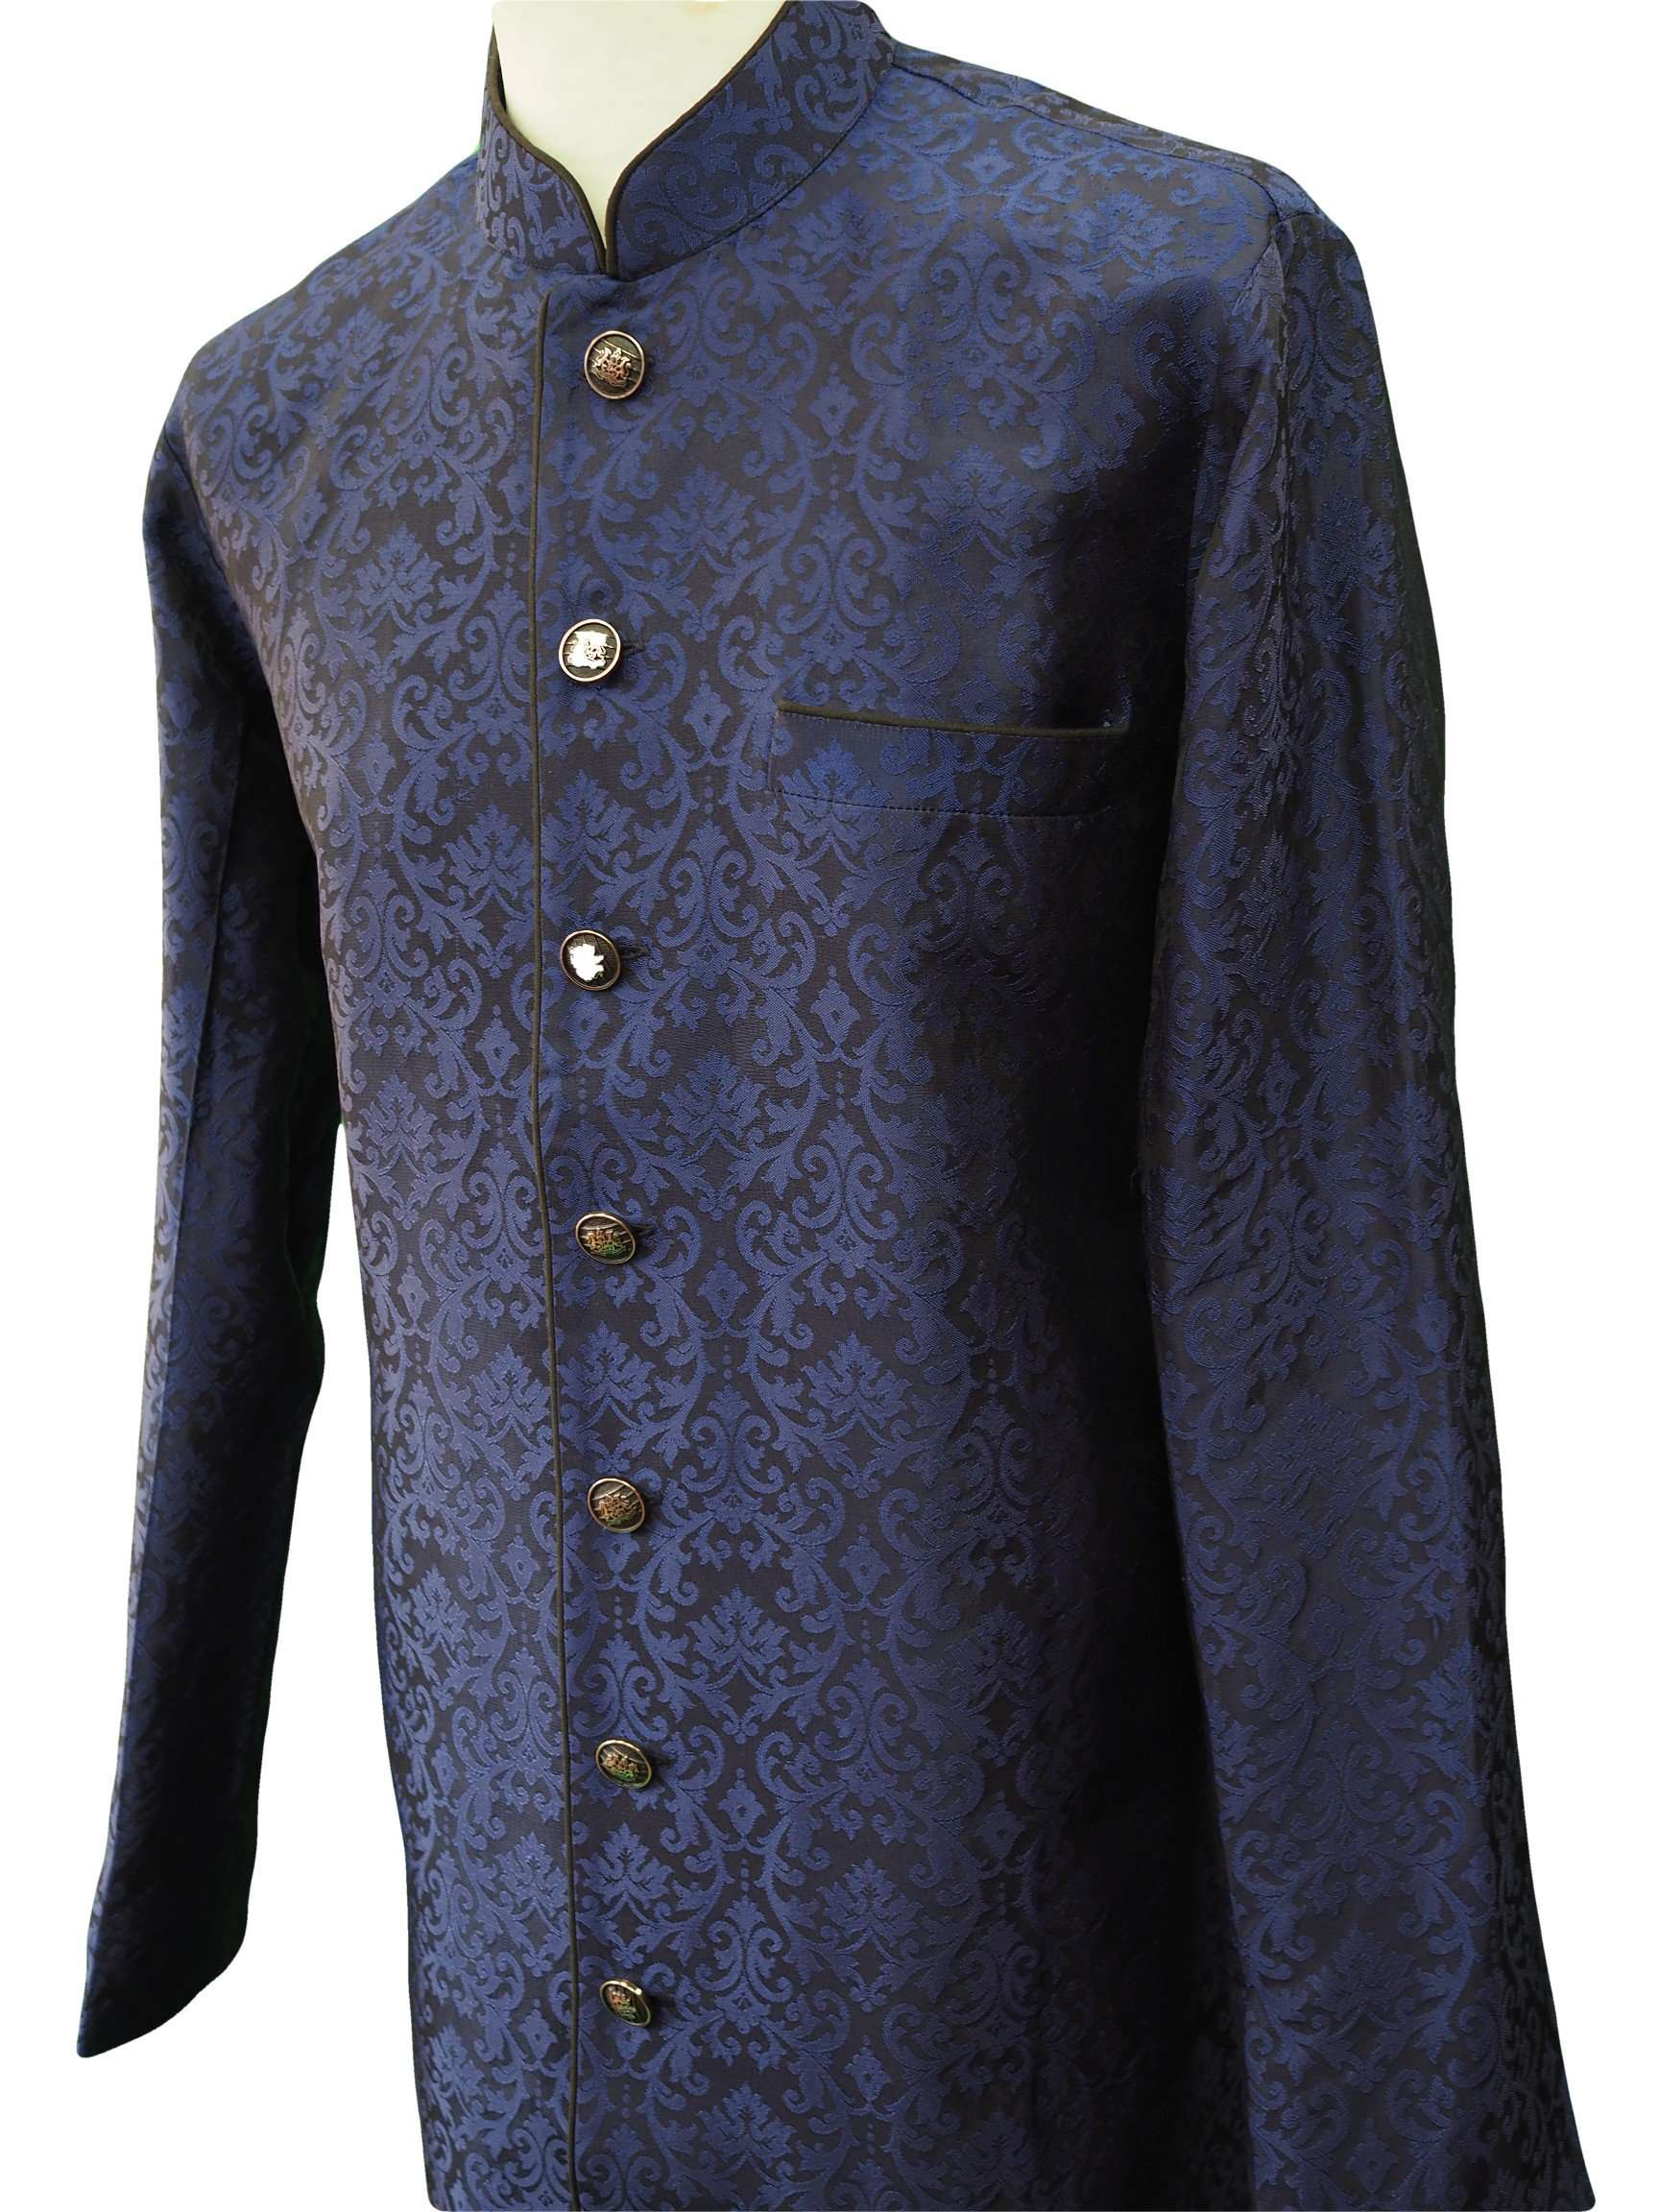 Mens Indian Light Sherwani set in Navy Brocade for weddings, Bollywood Party ( with Draw stringed trousers) - DD180802JV - Prachy Creations